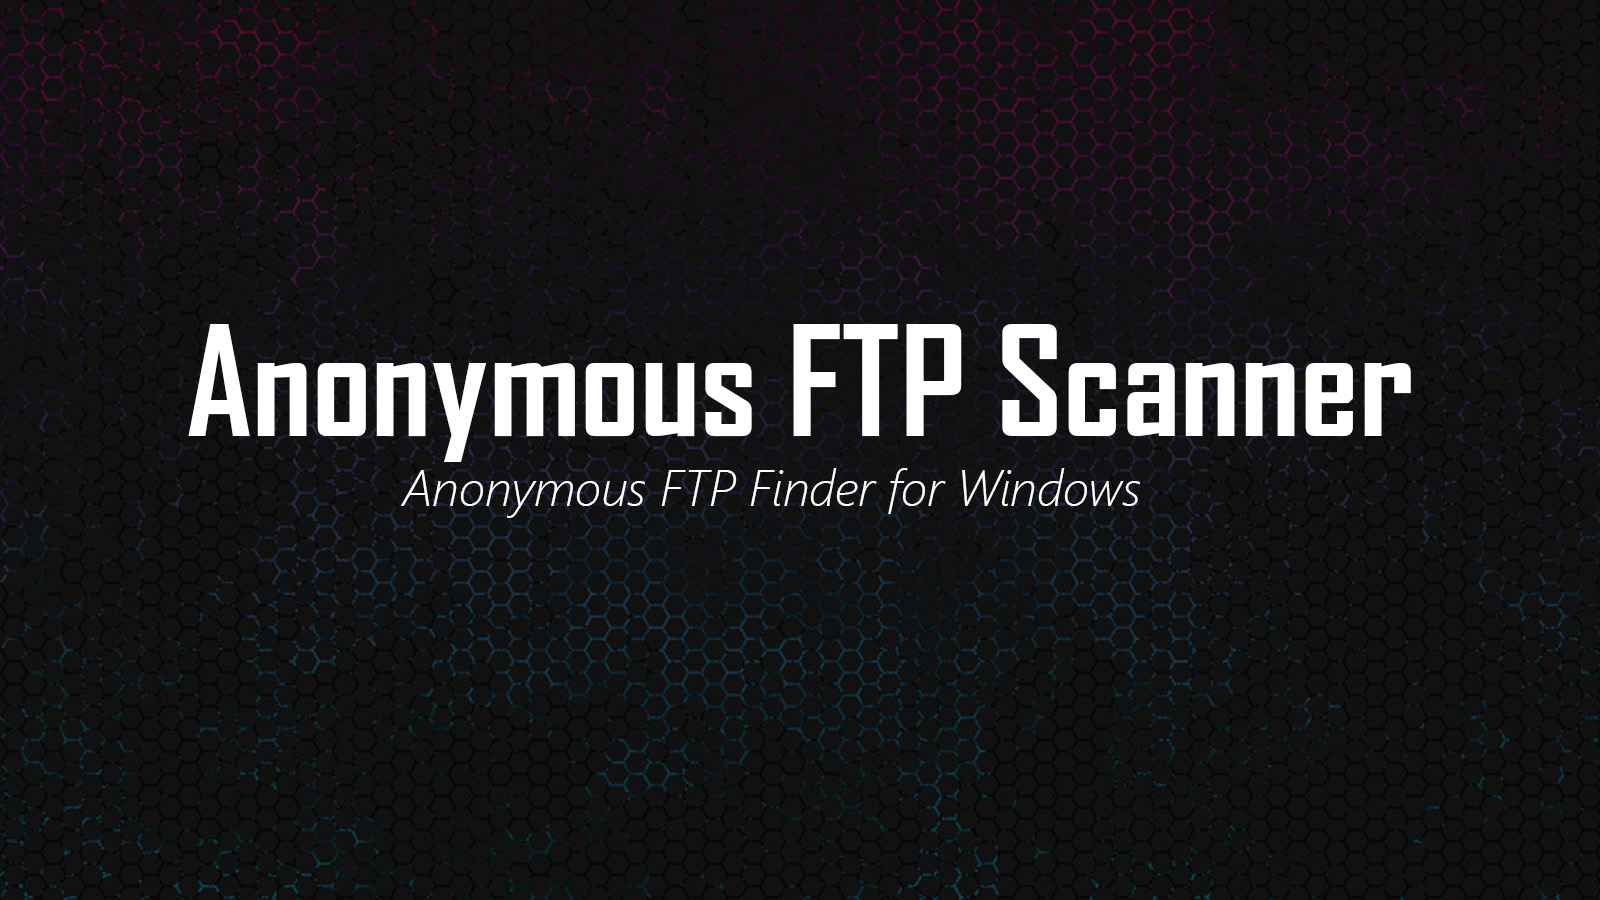 Anonymous FTP Scanner - Anonymous FTP Finder for Windows